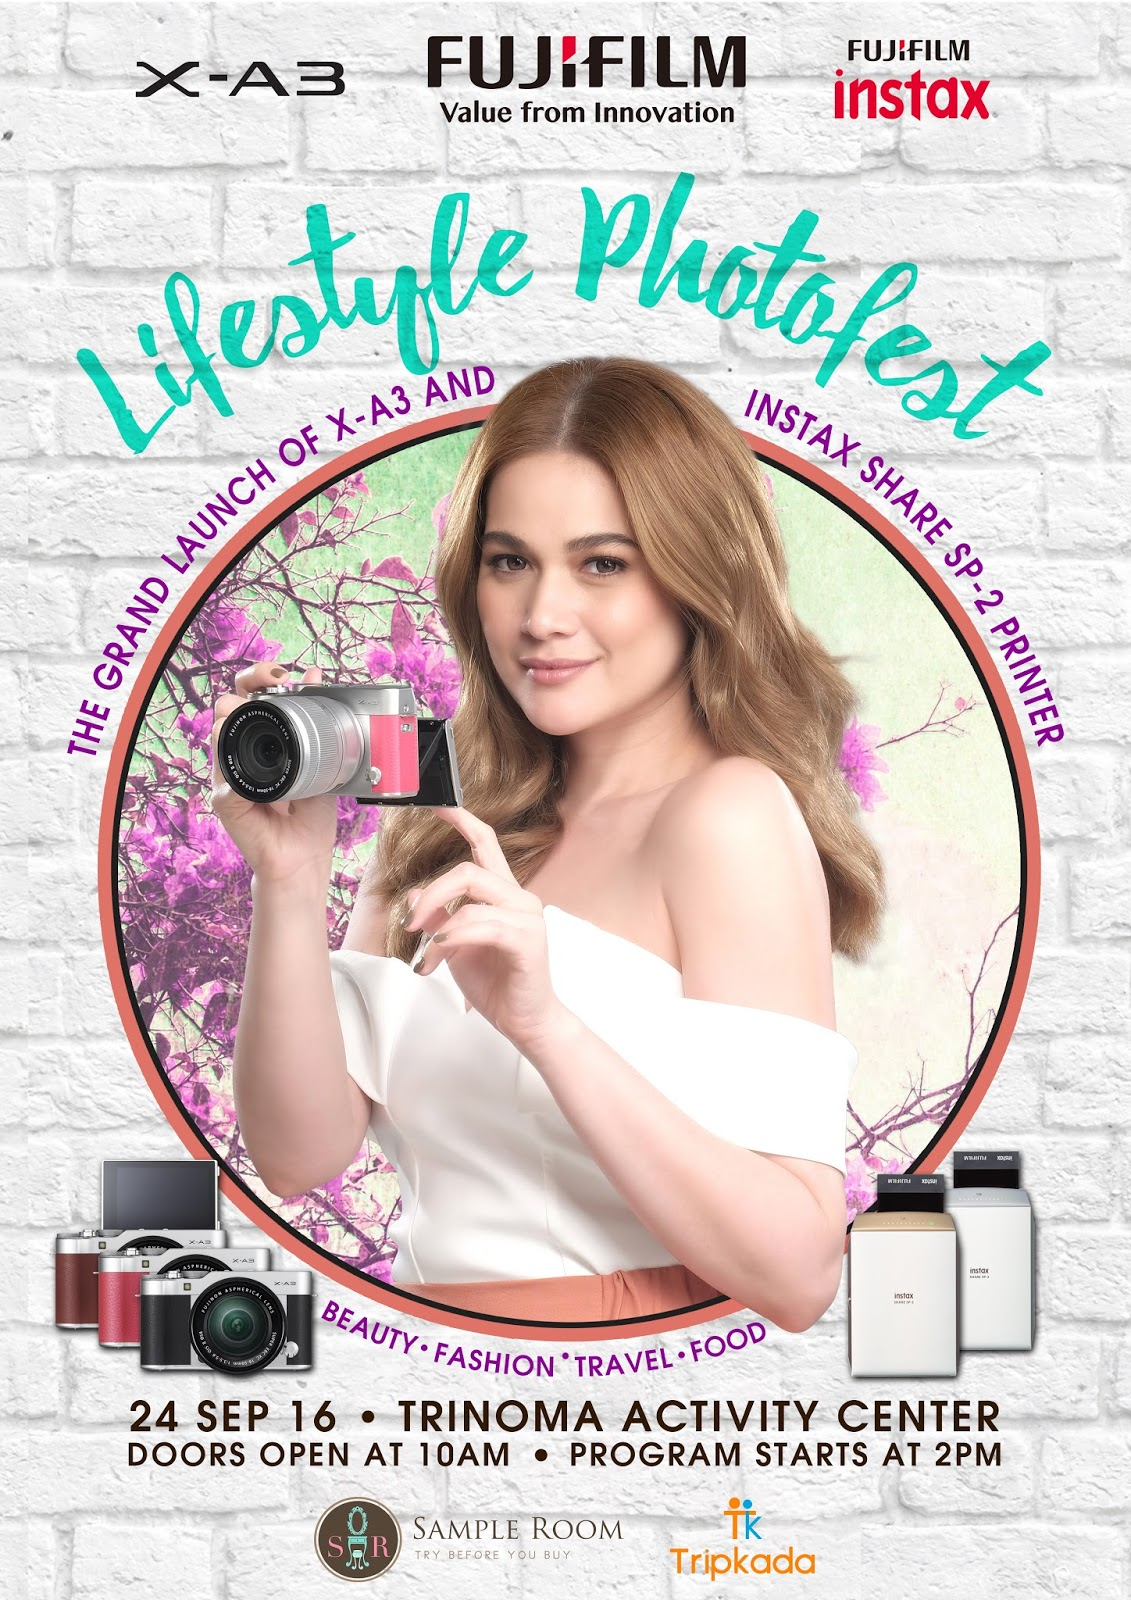 Bea alonzo and top social media influencers launch fujifilms new aside from seeing bea and mingling with popular bloggers and online personalities camera enthusiasts and fujifilm fans can avail of great deals with its stopboris Gallery